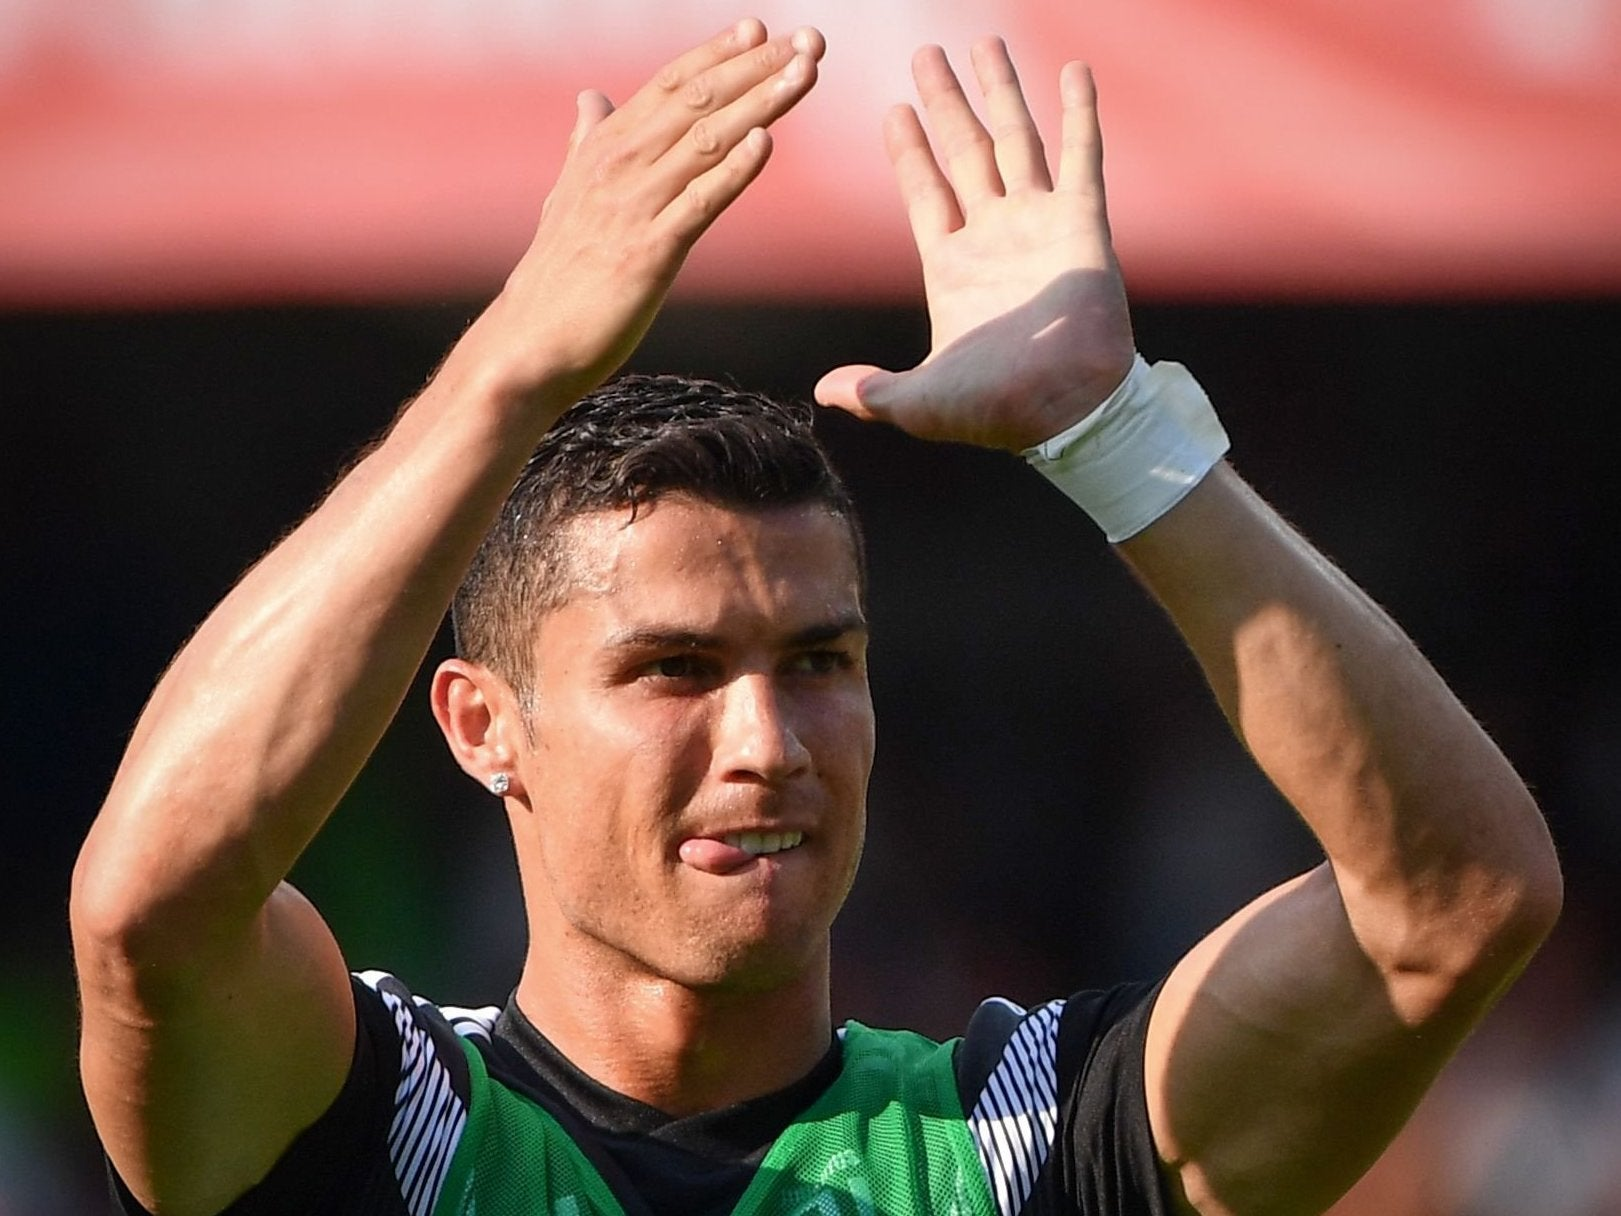 Cristiano Ronaldo dismisses claims he raped woman in Las Vegas hotel as 'fake ...